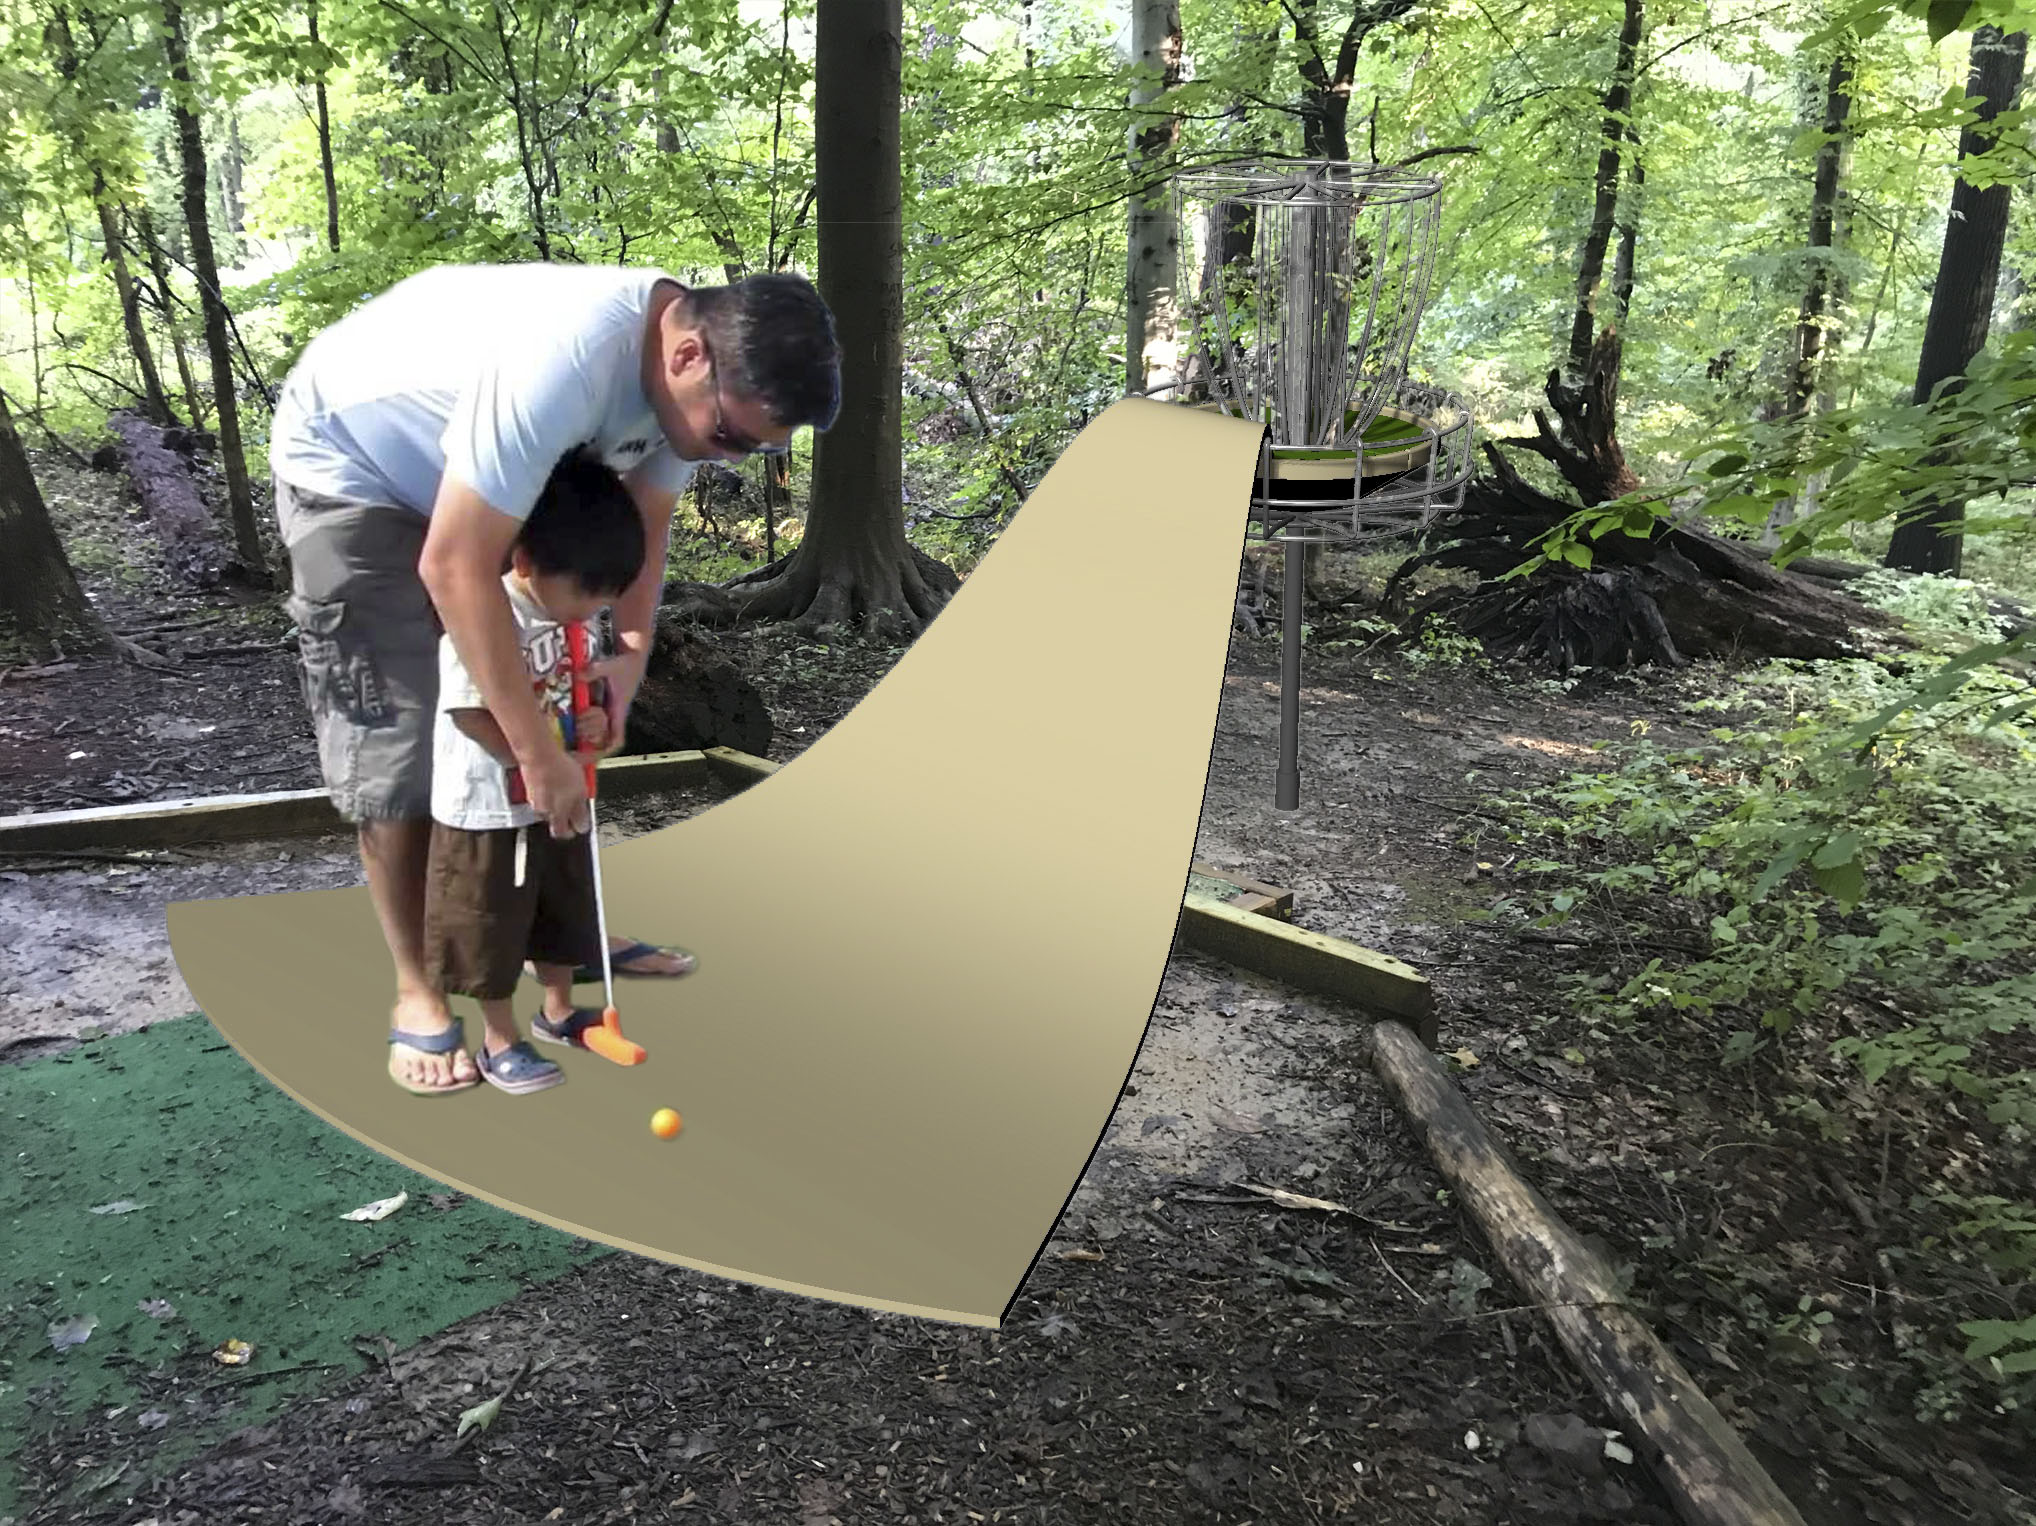 While brainstorming ways to disrupt the space, Carlson and Jeon considered transforming it into a mini-golf course.